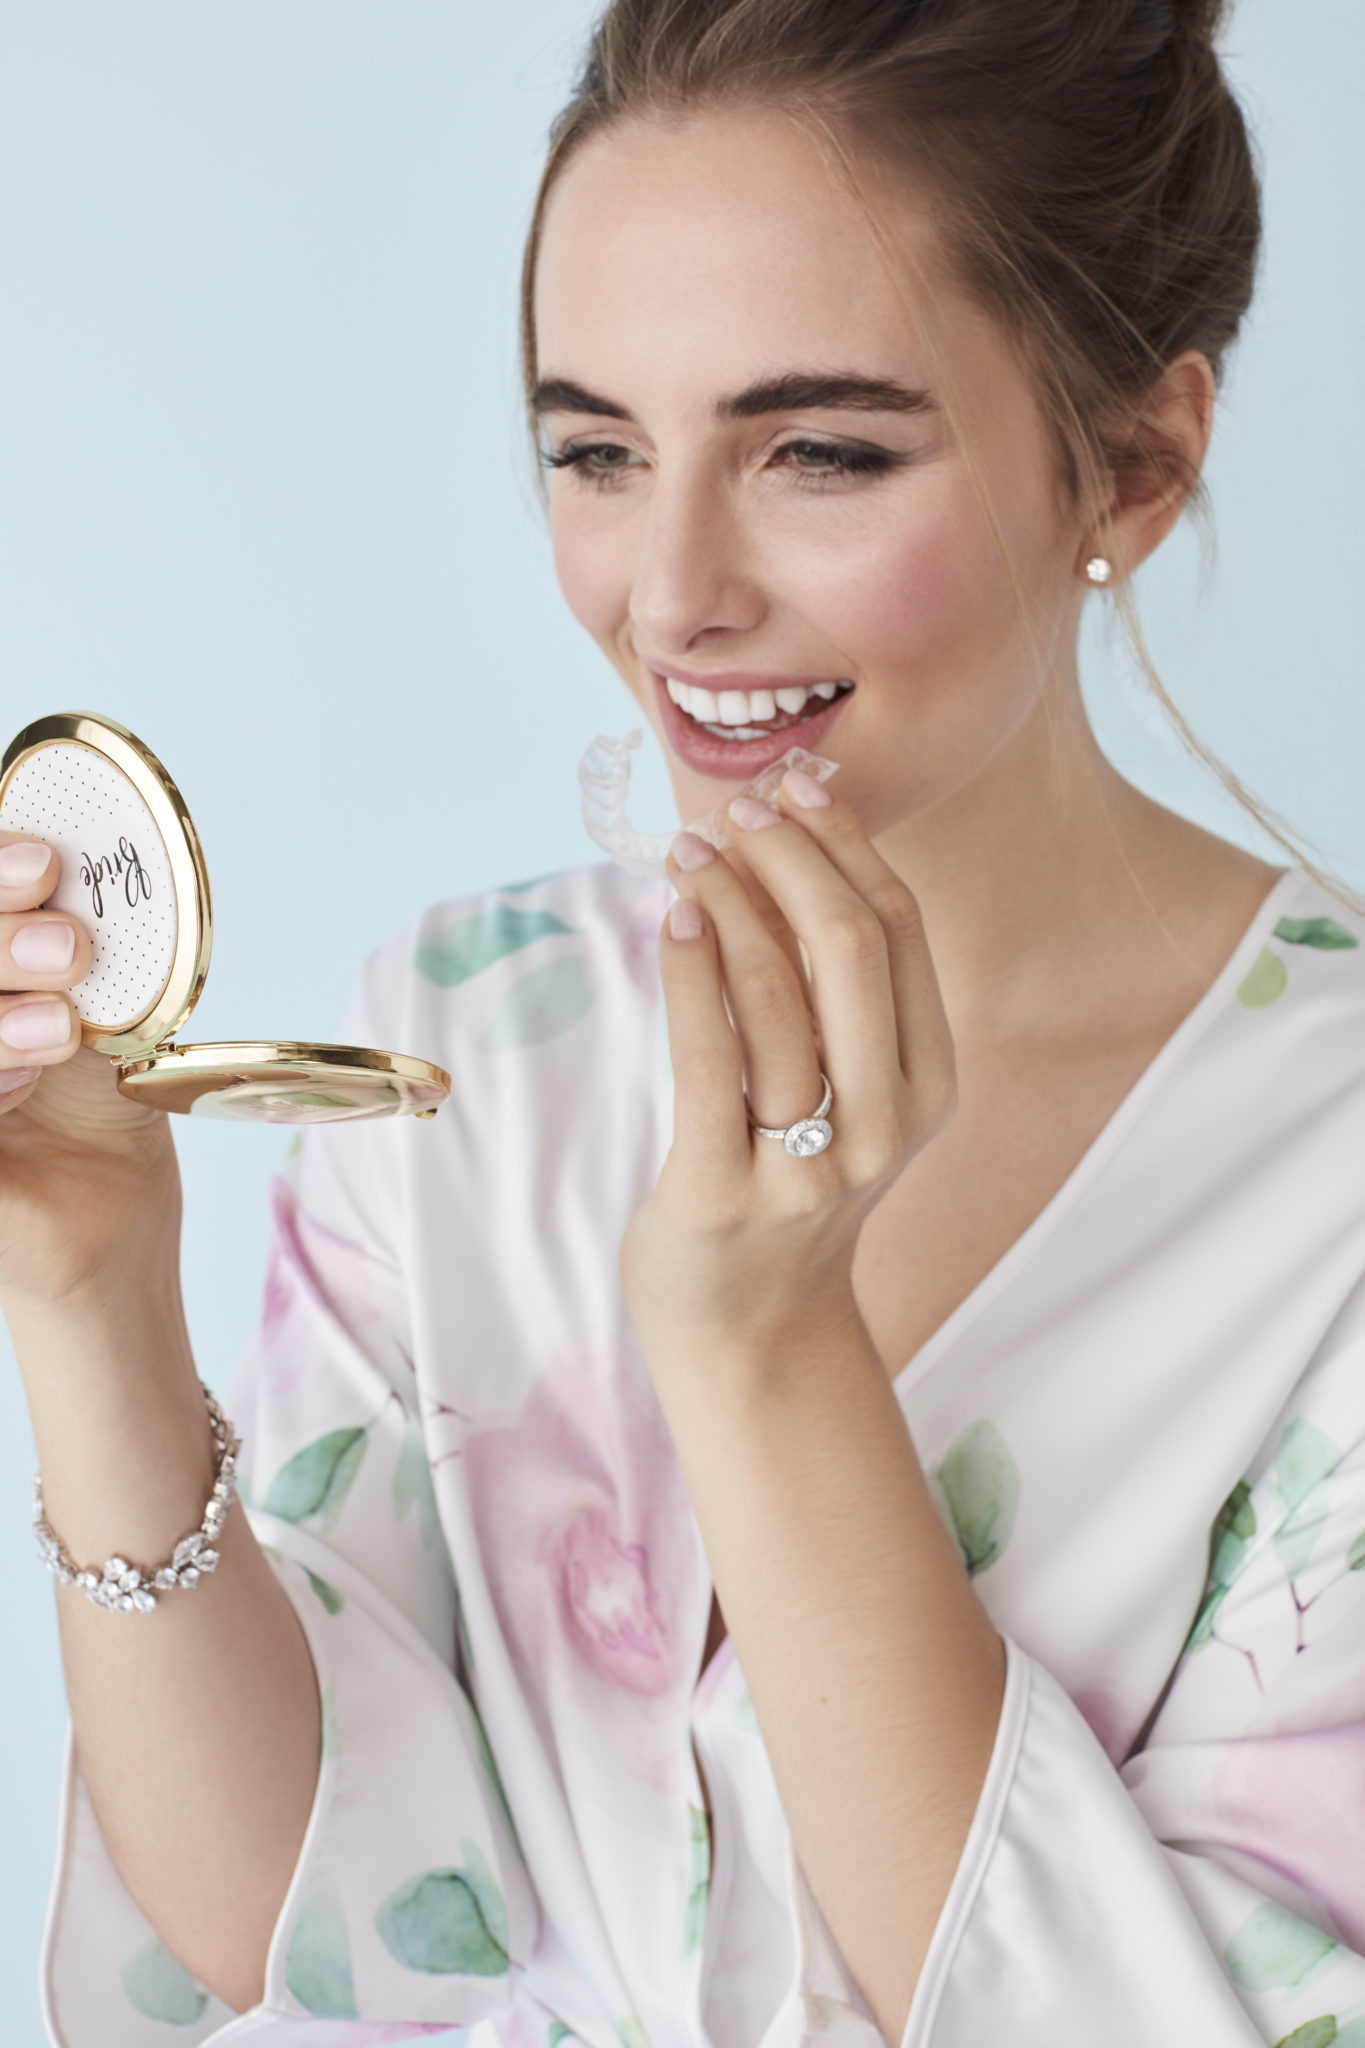 bride with teeth aligning tray and compact mirror